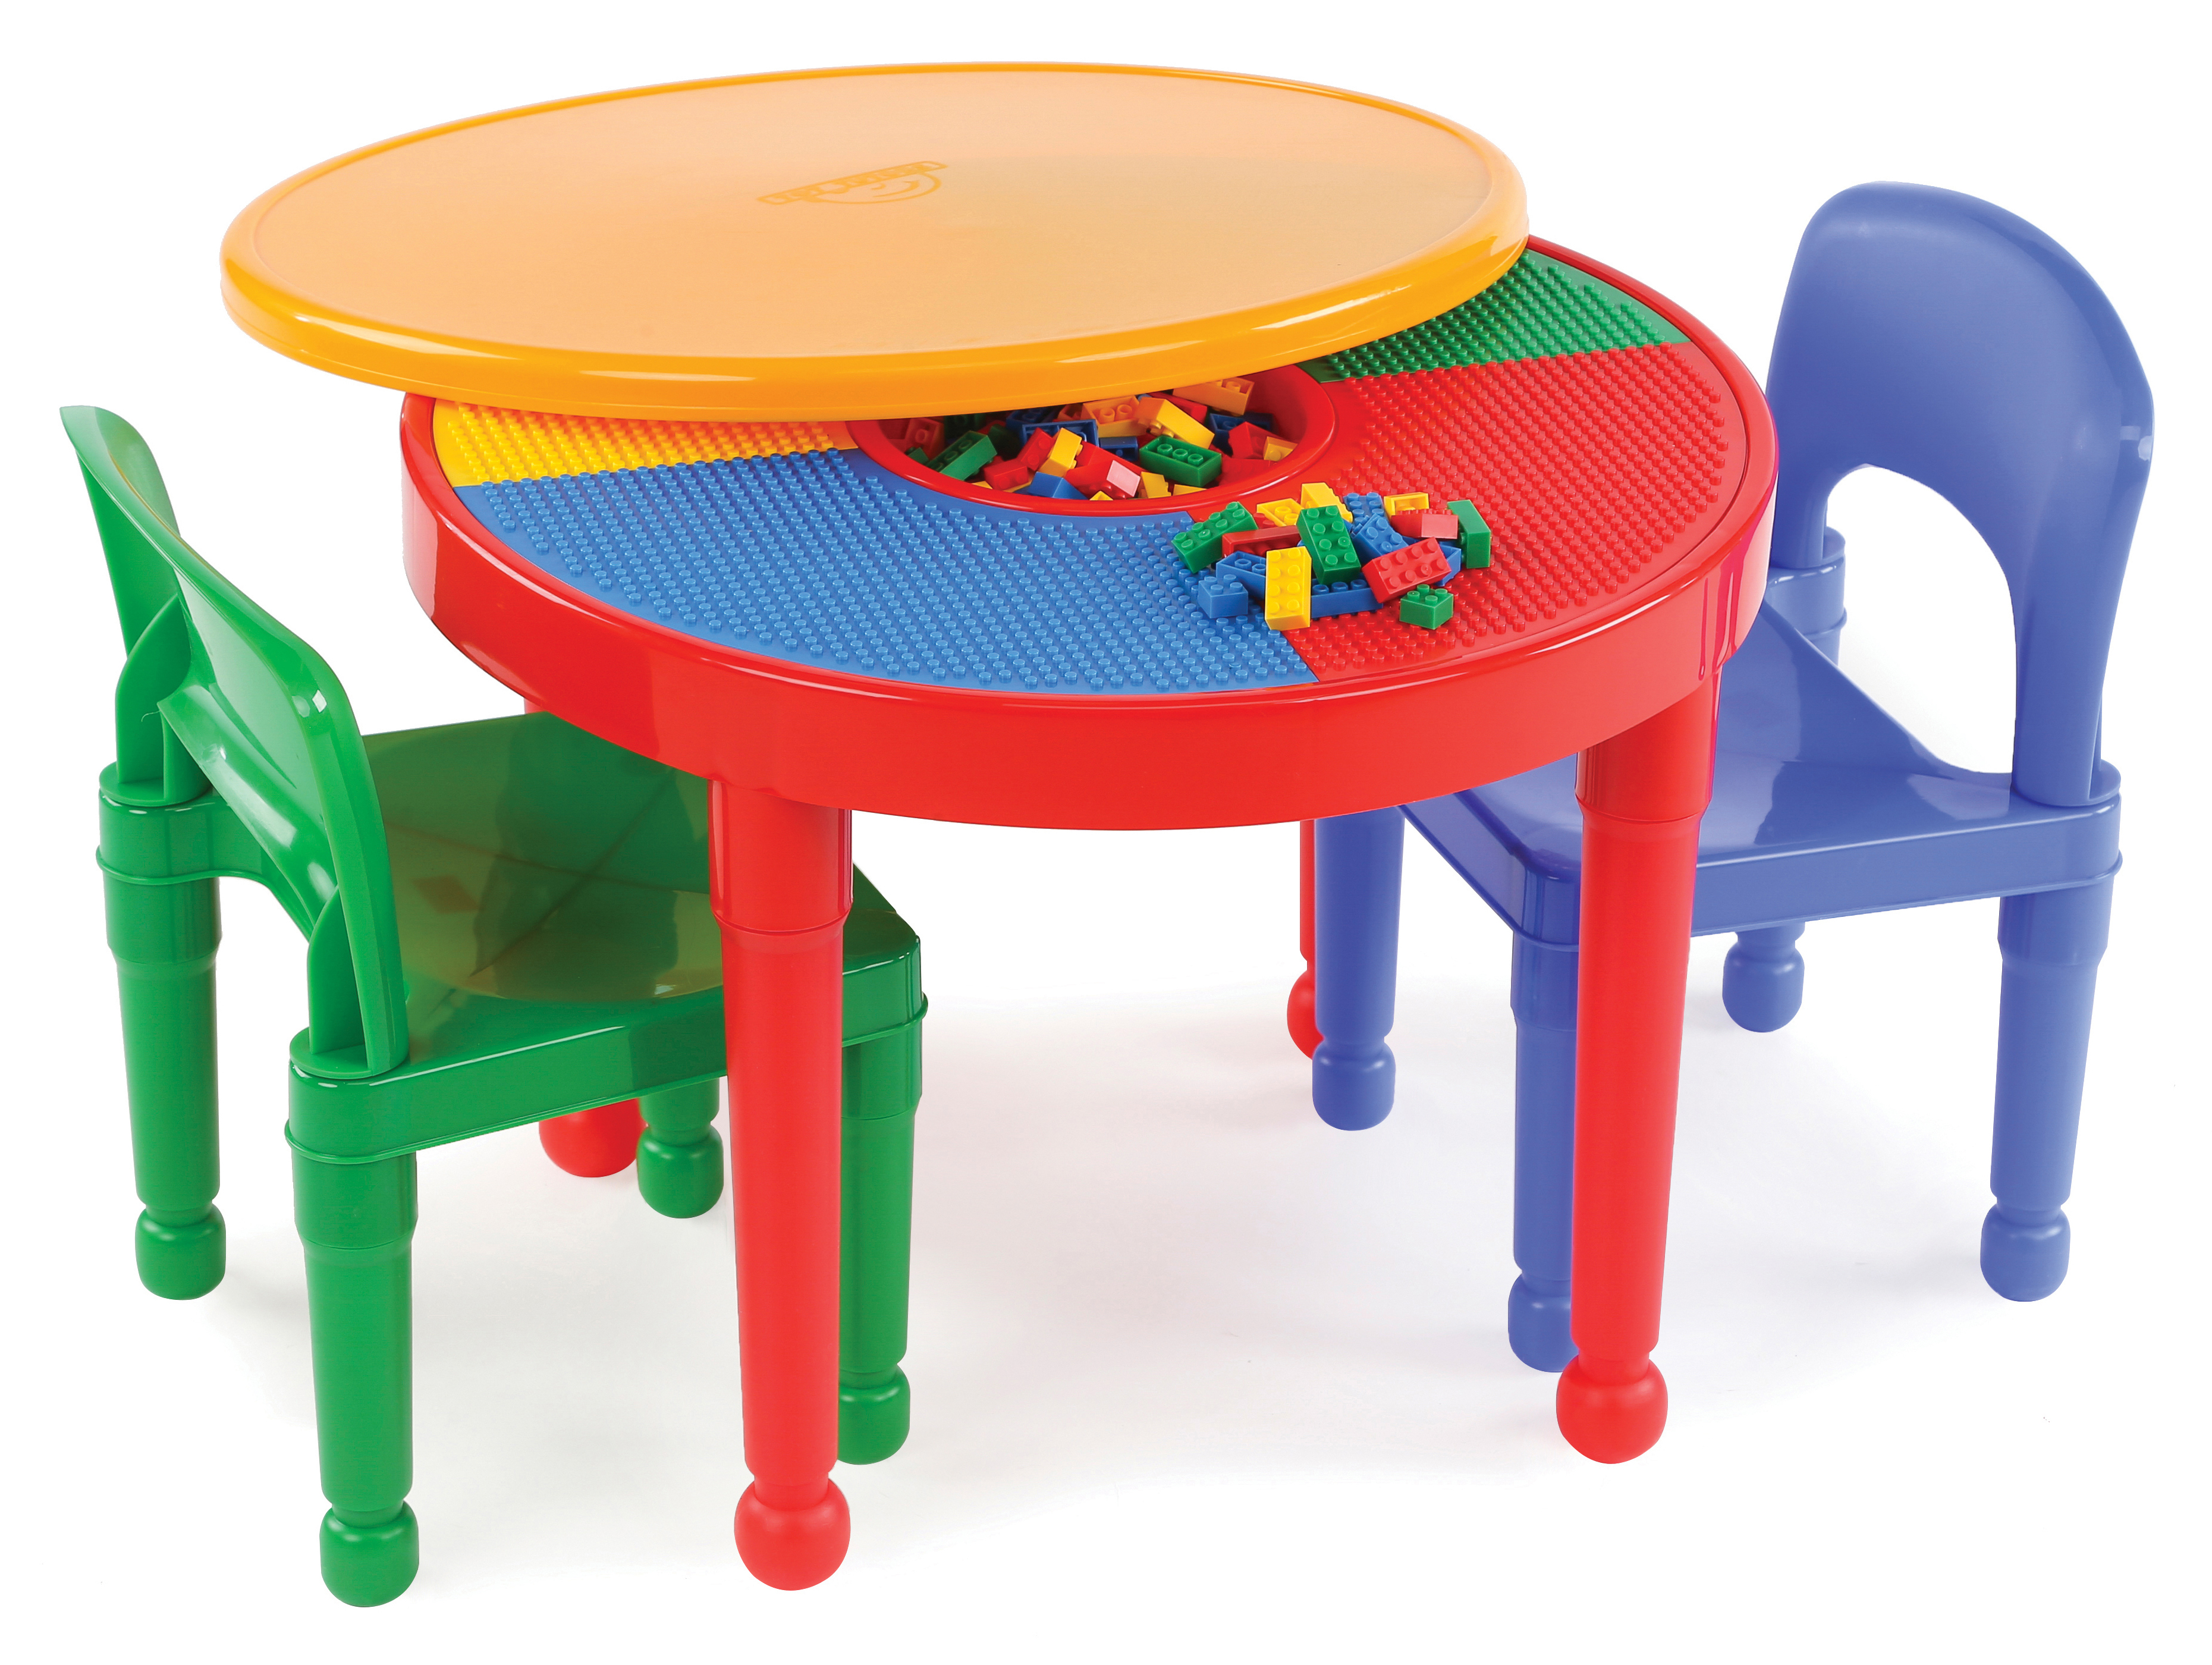 Plastic Table And Chairs For Kids Tot Tutors 2 In 1 Activity Table And 2 Chair Set